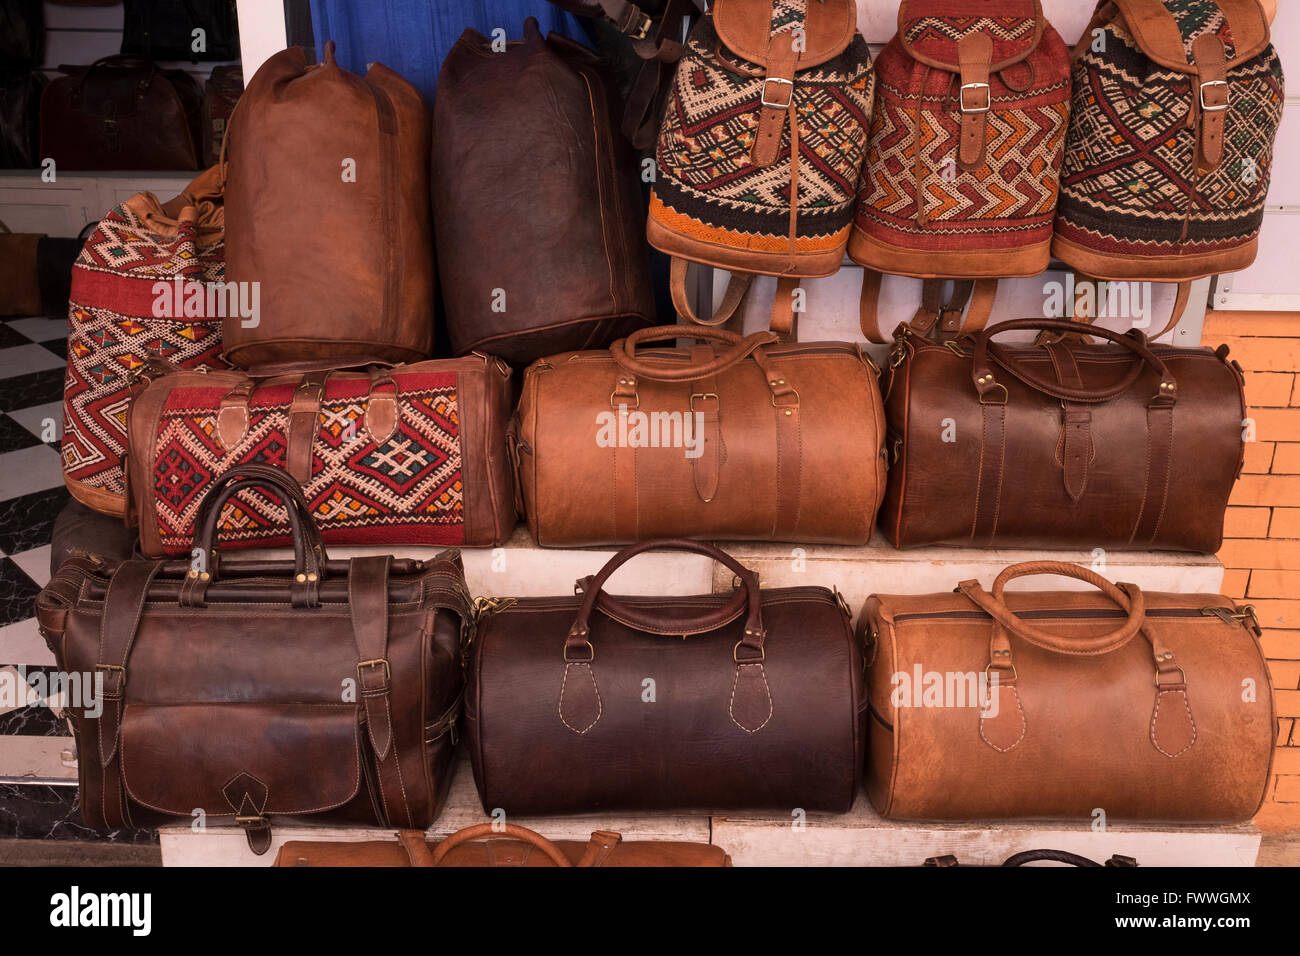 Leather bags for sale in the Medina in Marrakech, Morocco ...